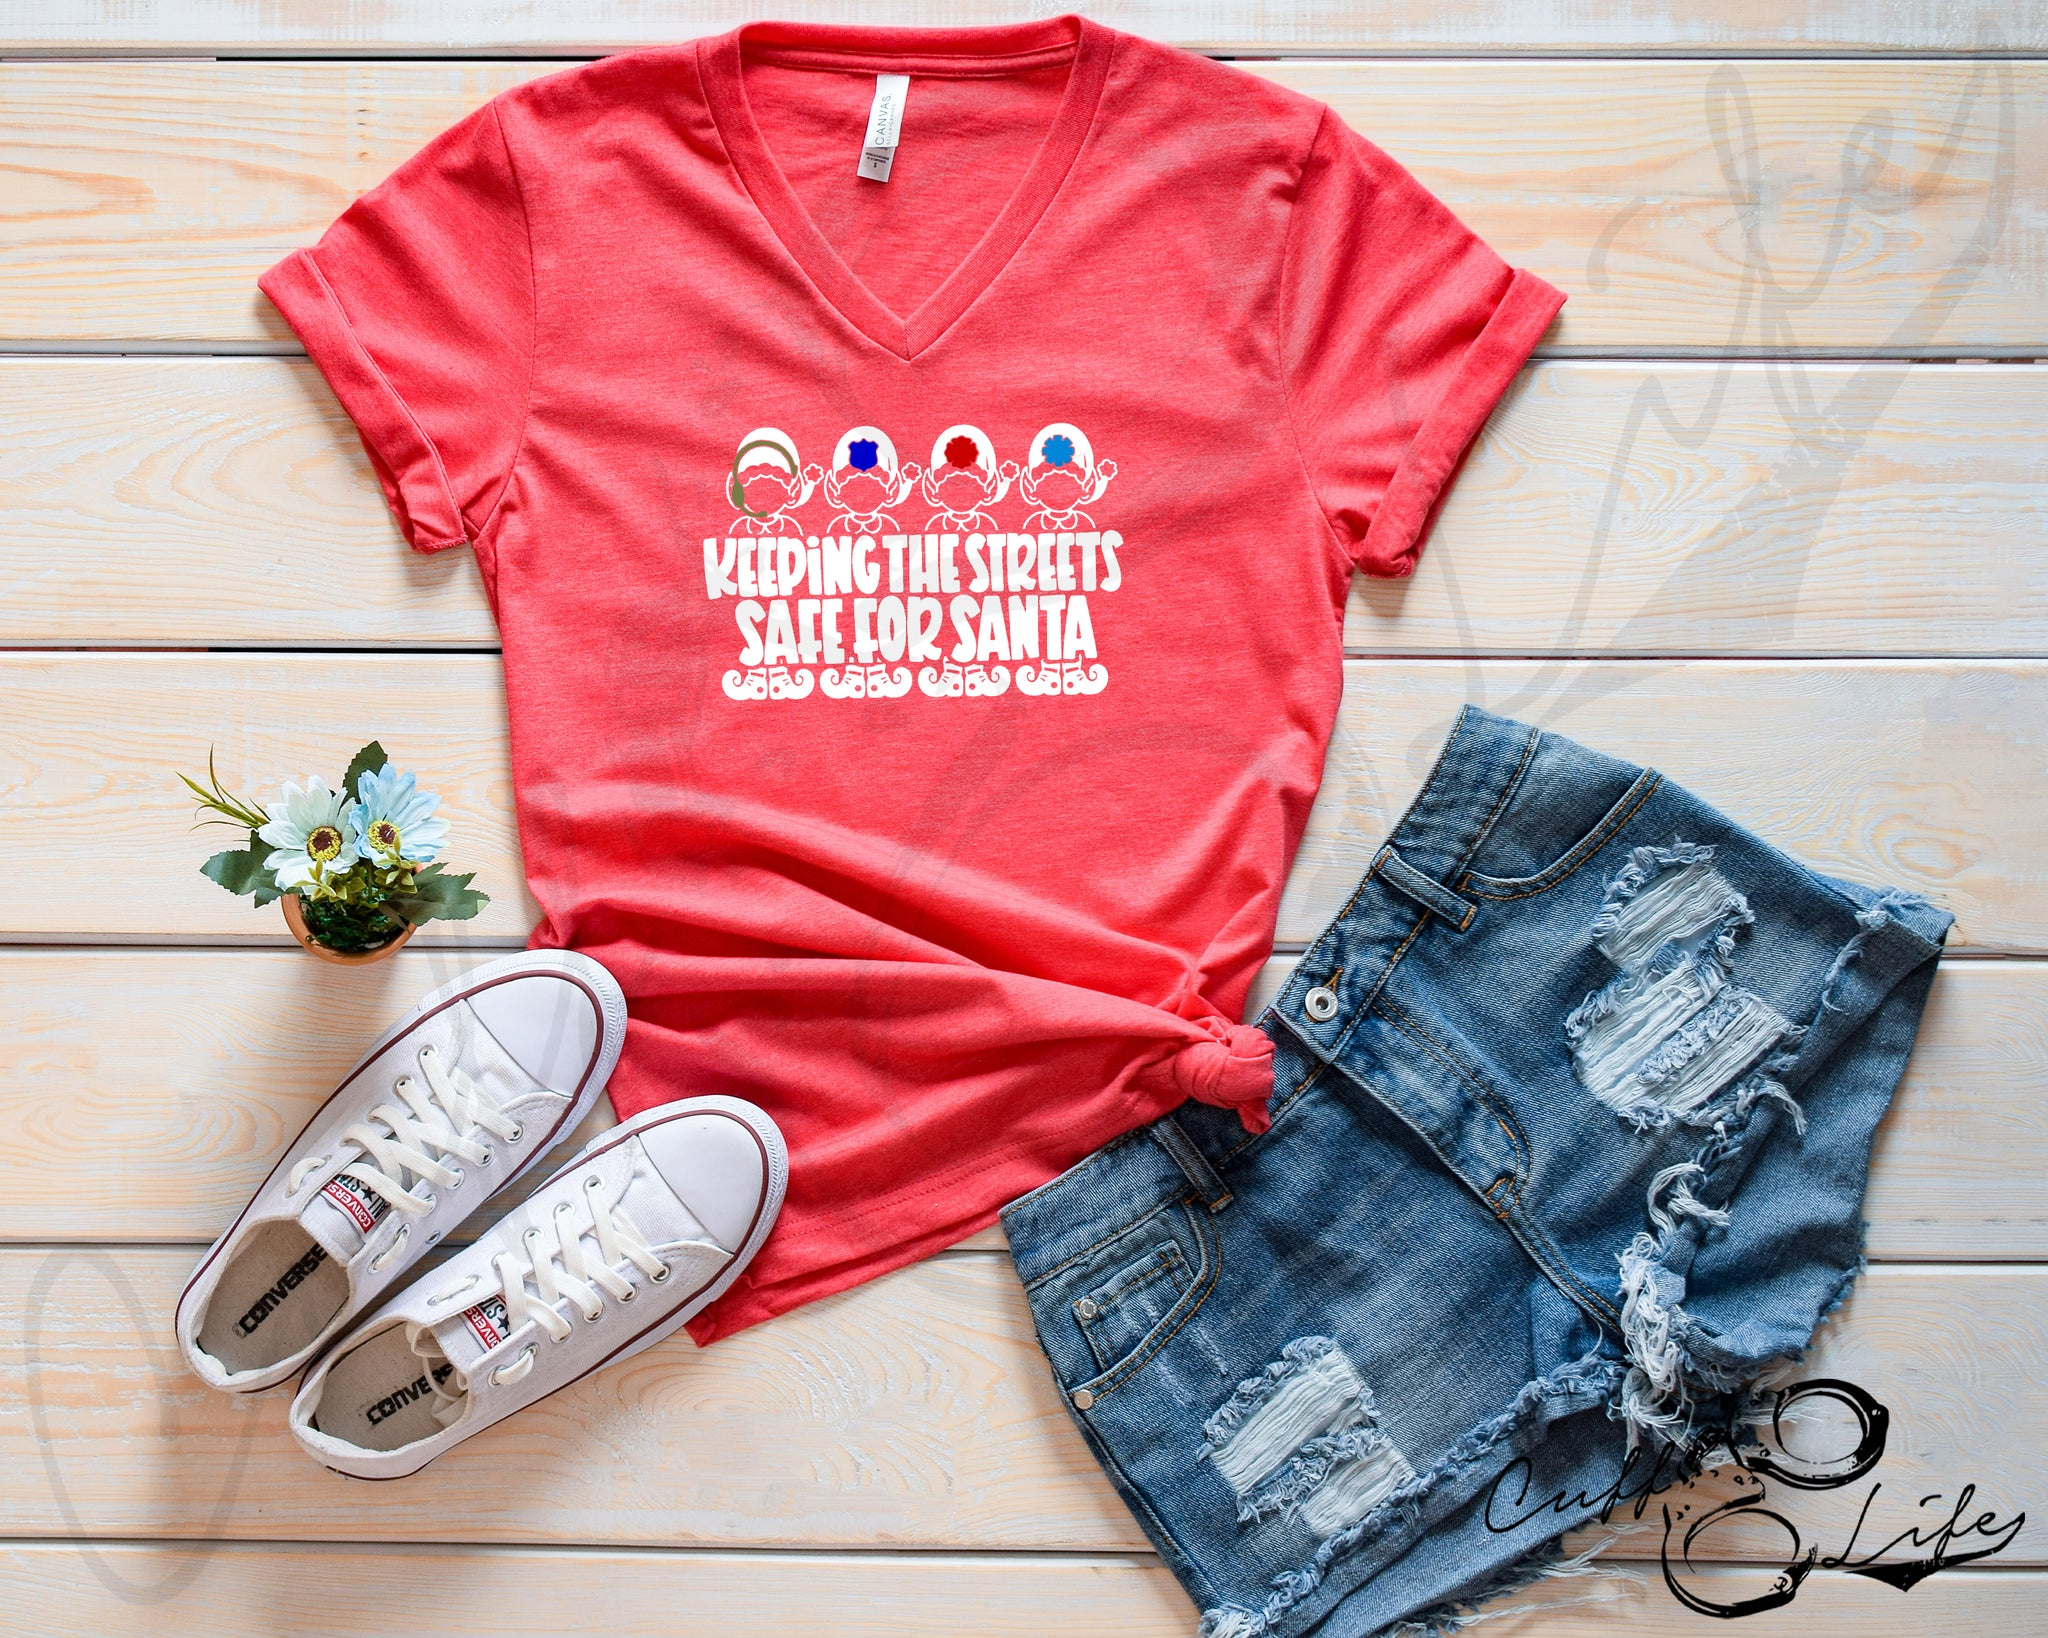 Keeping the Streets Safe for Santa © - Boyfriend Fit V-Neck Tee